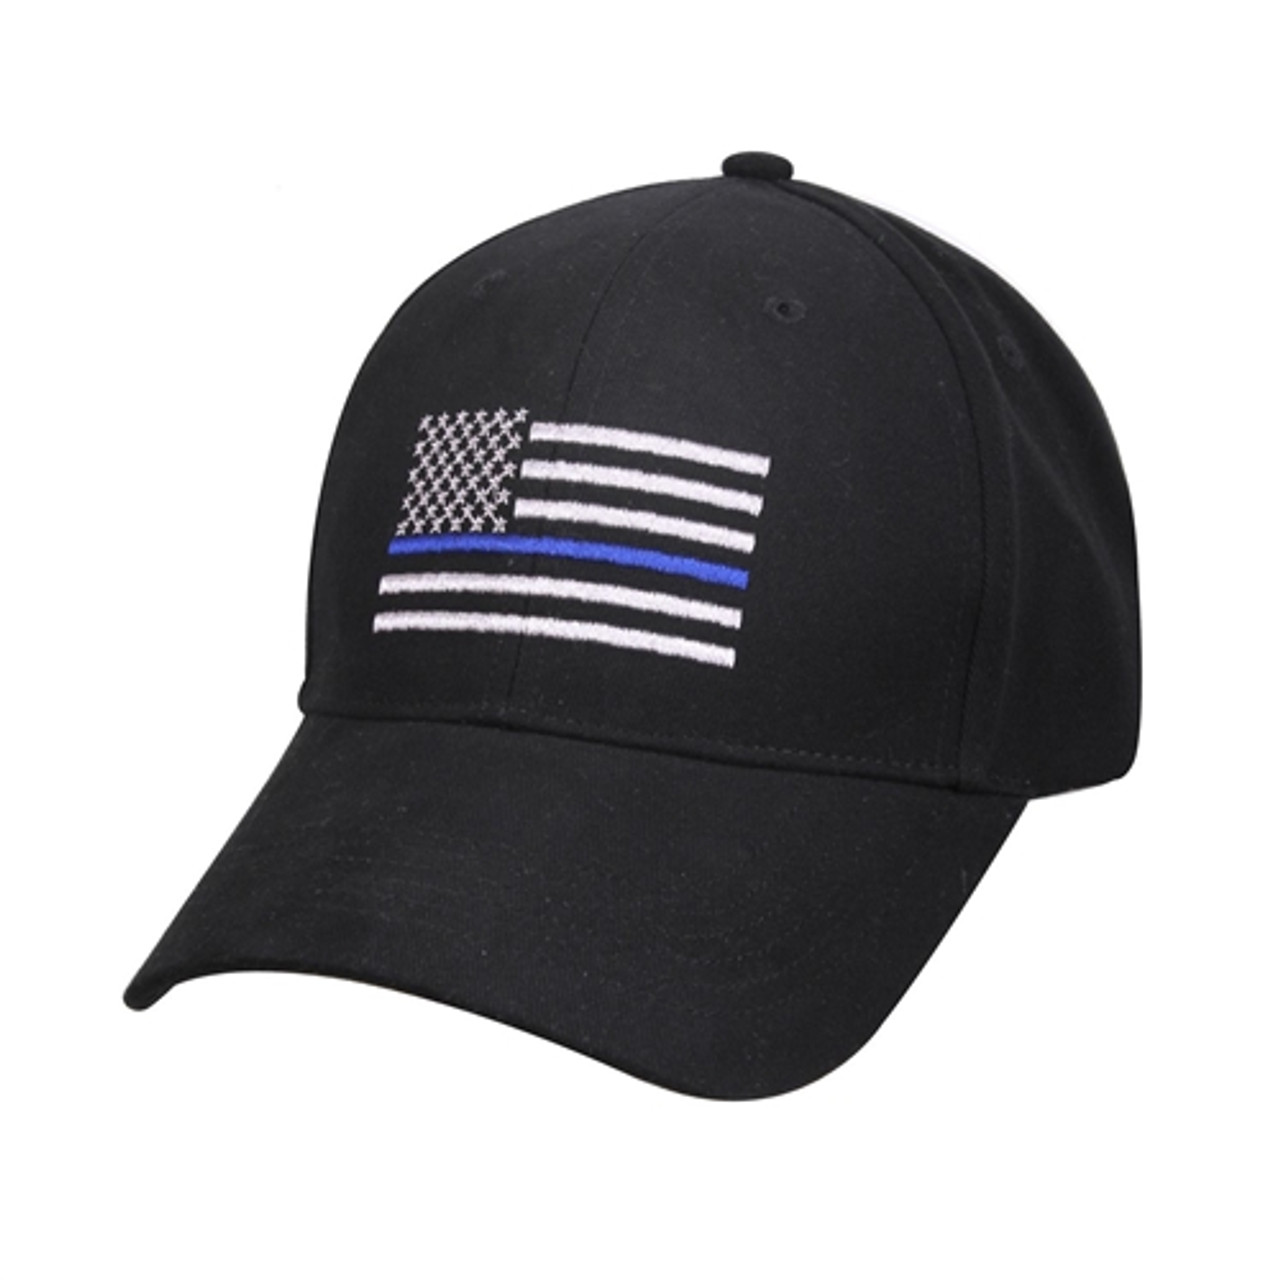 Thin Blue Line Flag Low Profile Cap from Hessen Tactical.